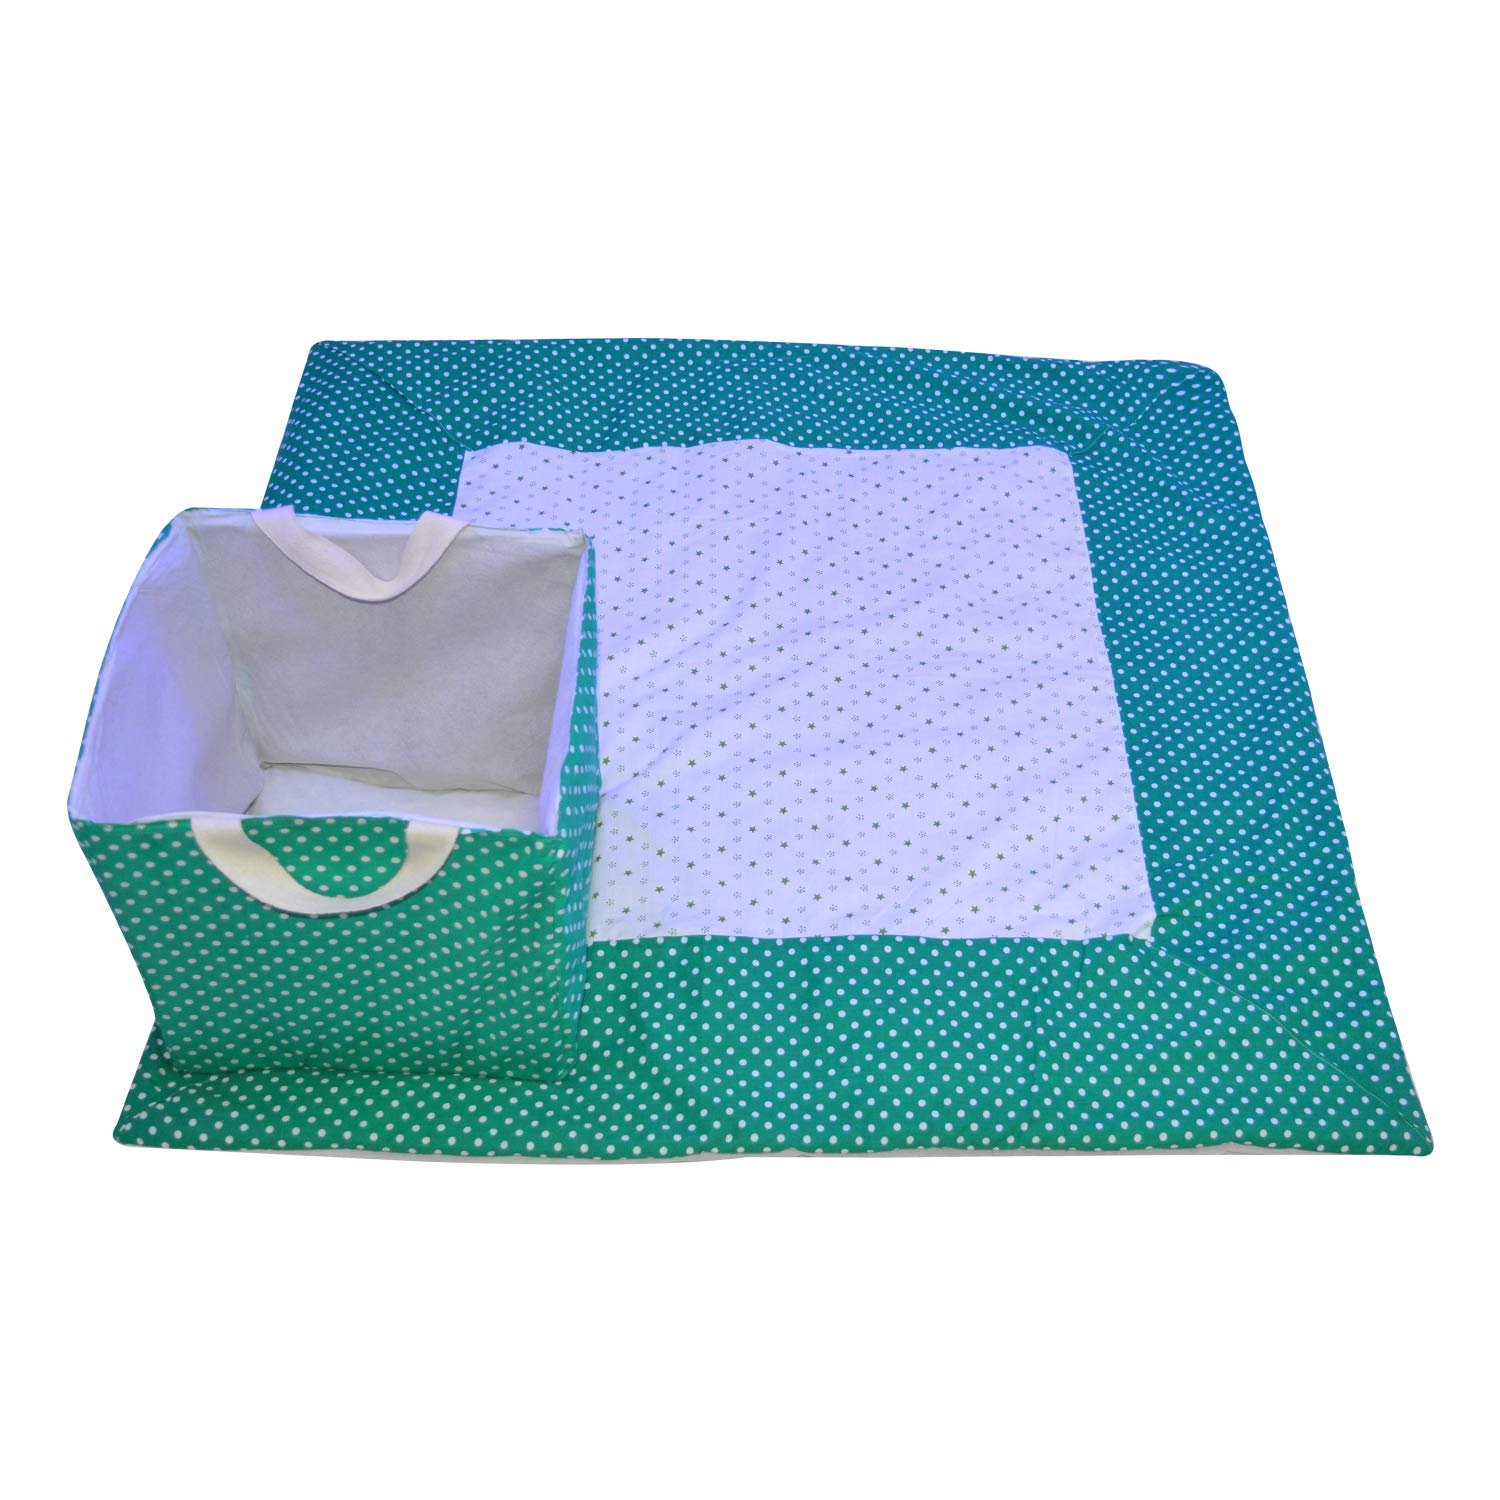 Creative Textiles Cotton Printed Outdoor and Indoor Play Mat with Laundry Bag (Green)